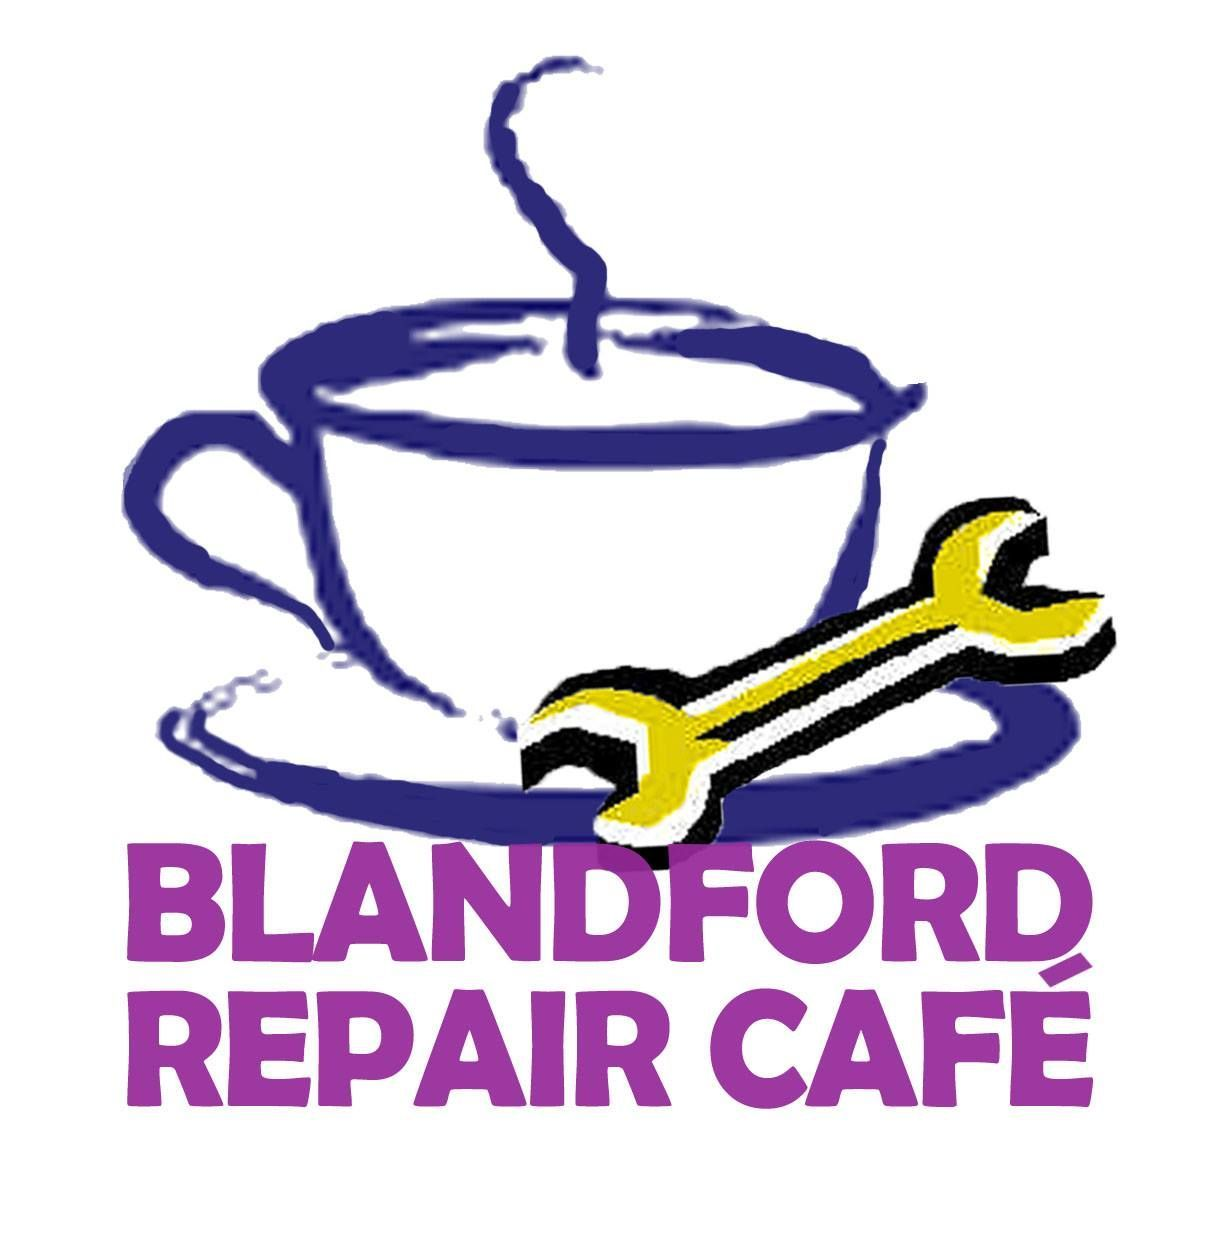 The Blandford Repair Cafe will be launched